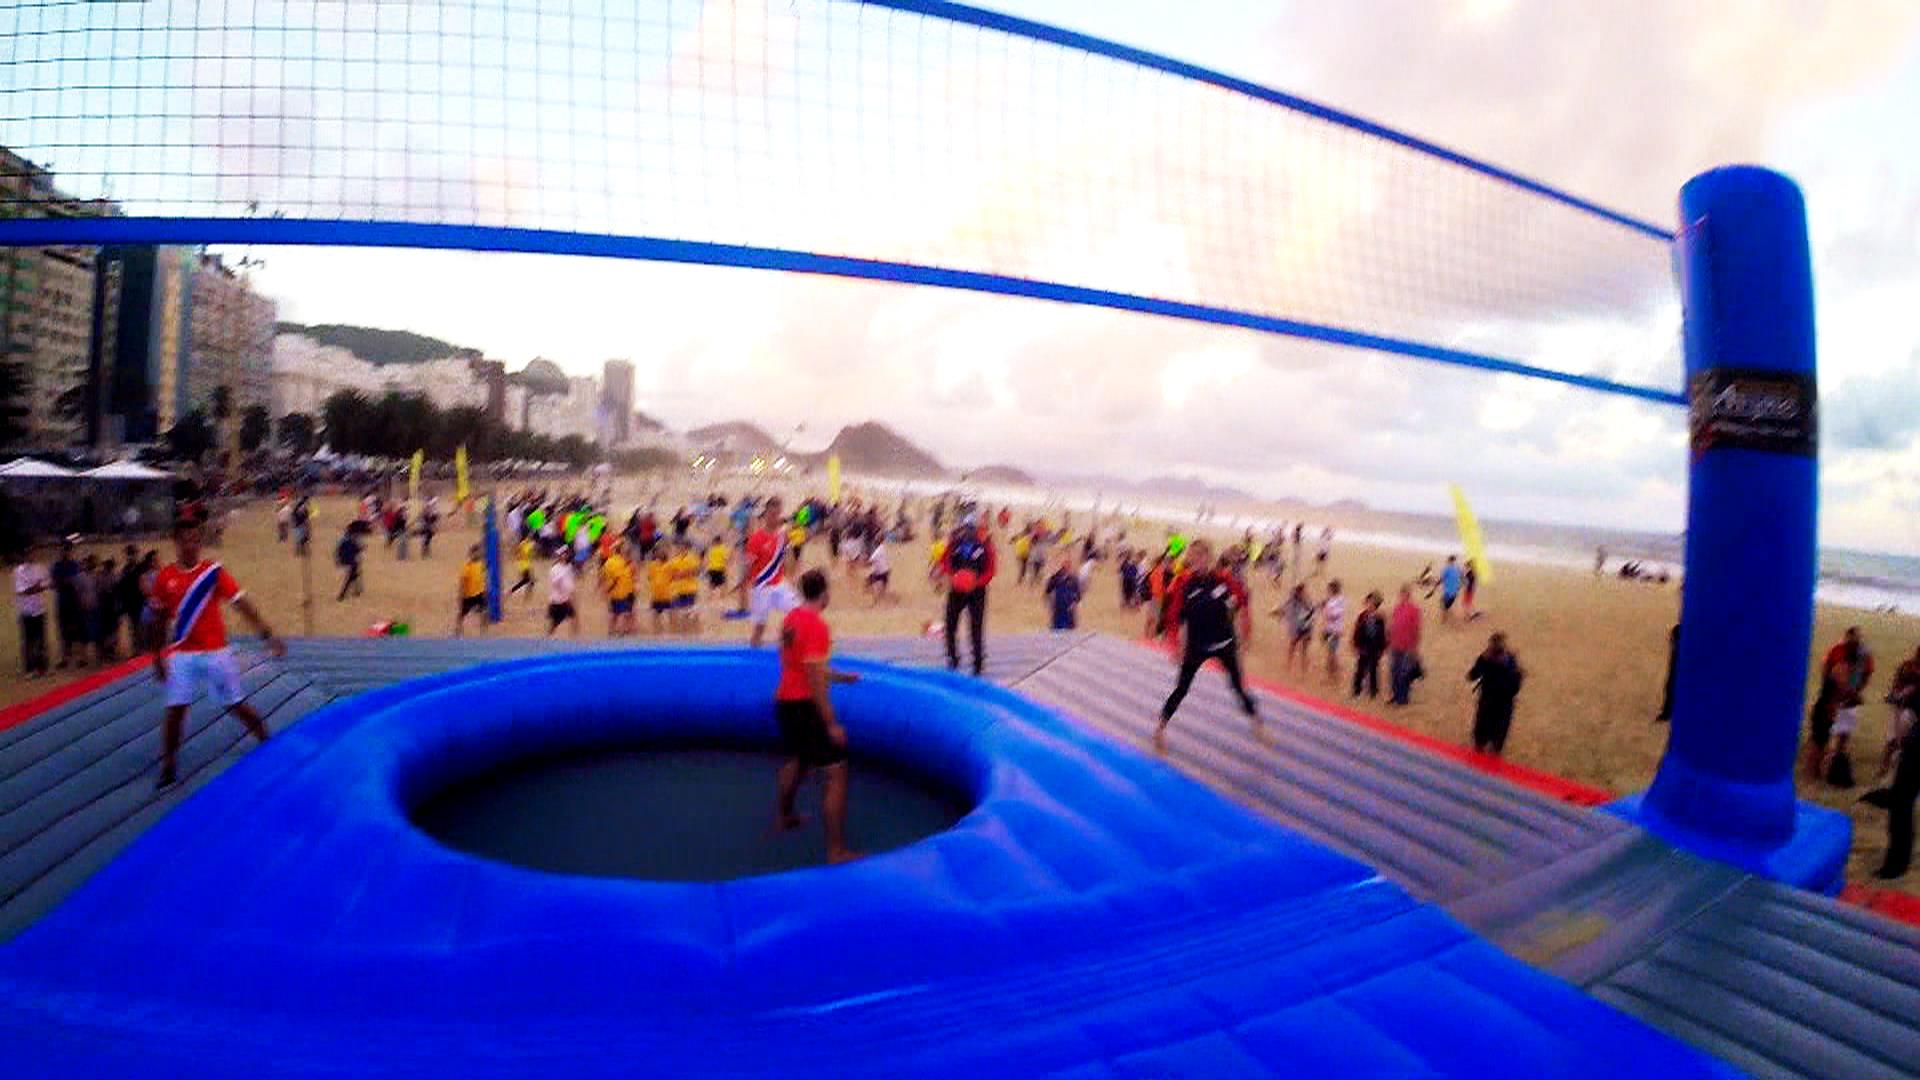 What is bossaball? See TODAY anchors compete on inflatable court